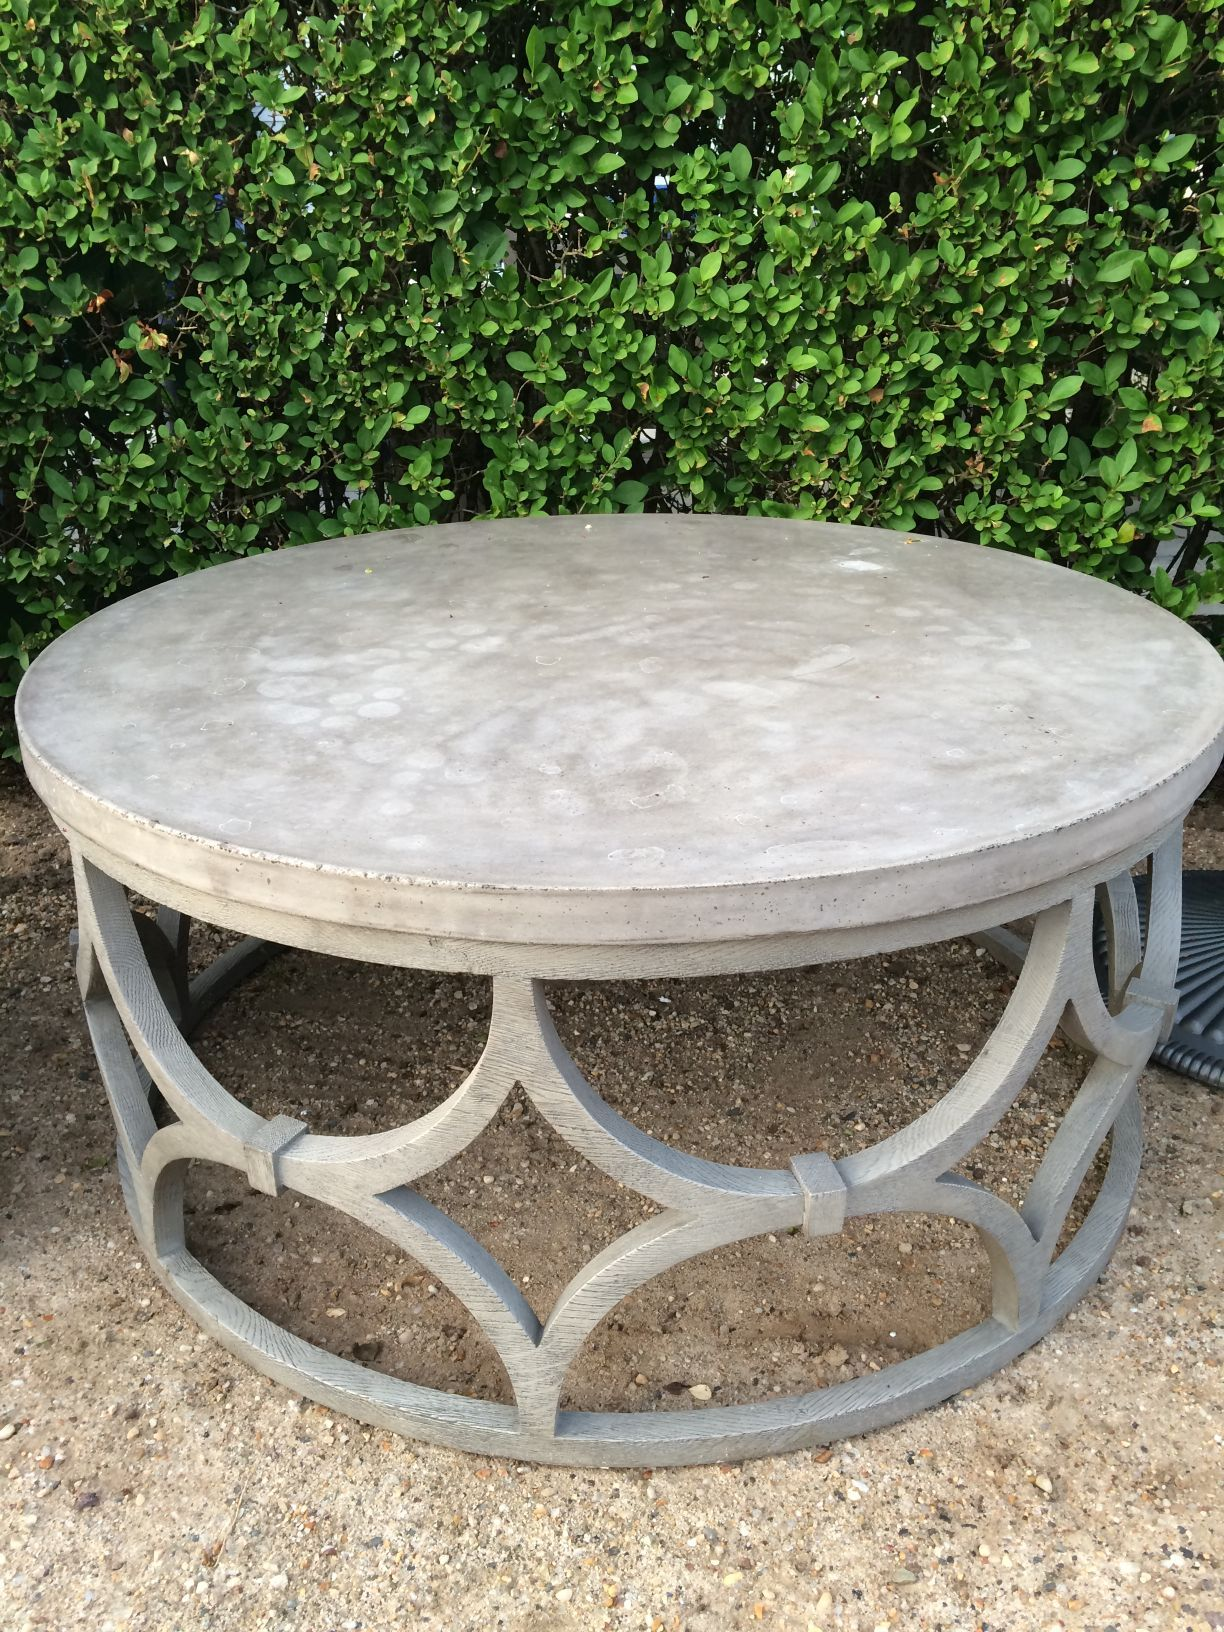 Outdoor Concrete Round Rowan Coffee Table Mecox Gardens Coffee Table Inspiration Coffee Table Coffee Table Wood [ 1632 x 1224 Pixel ]